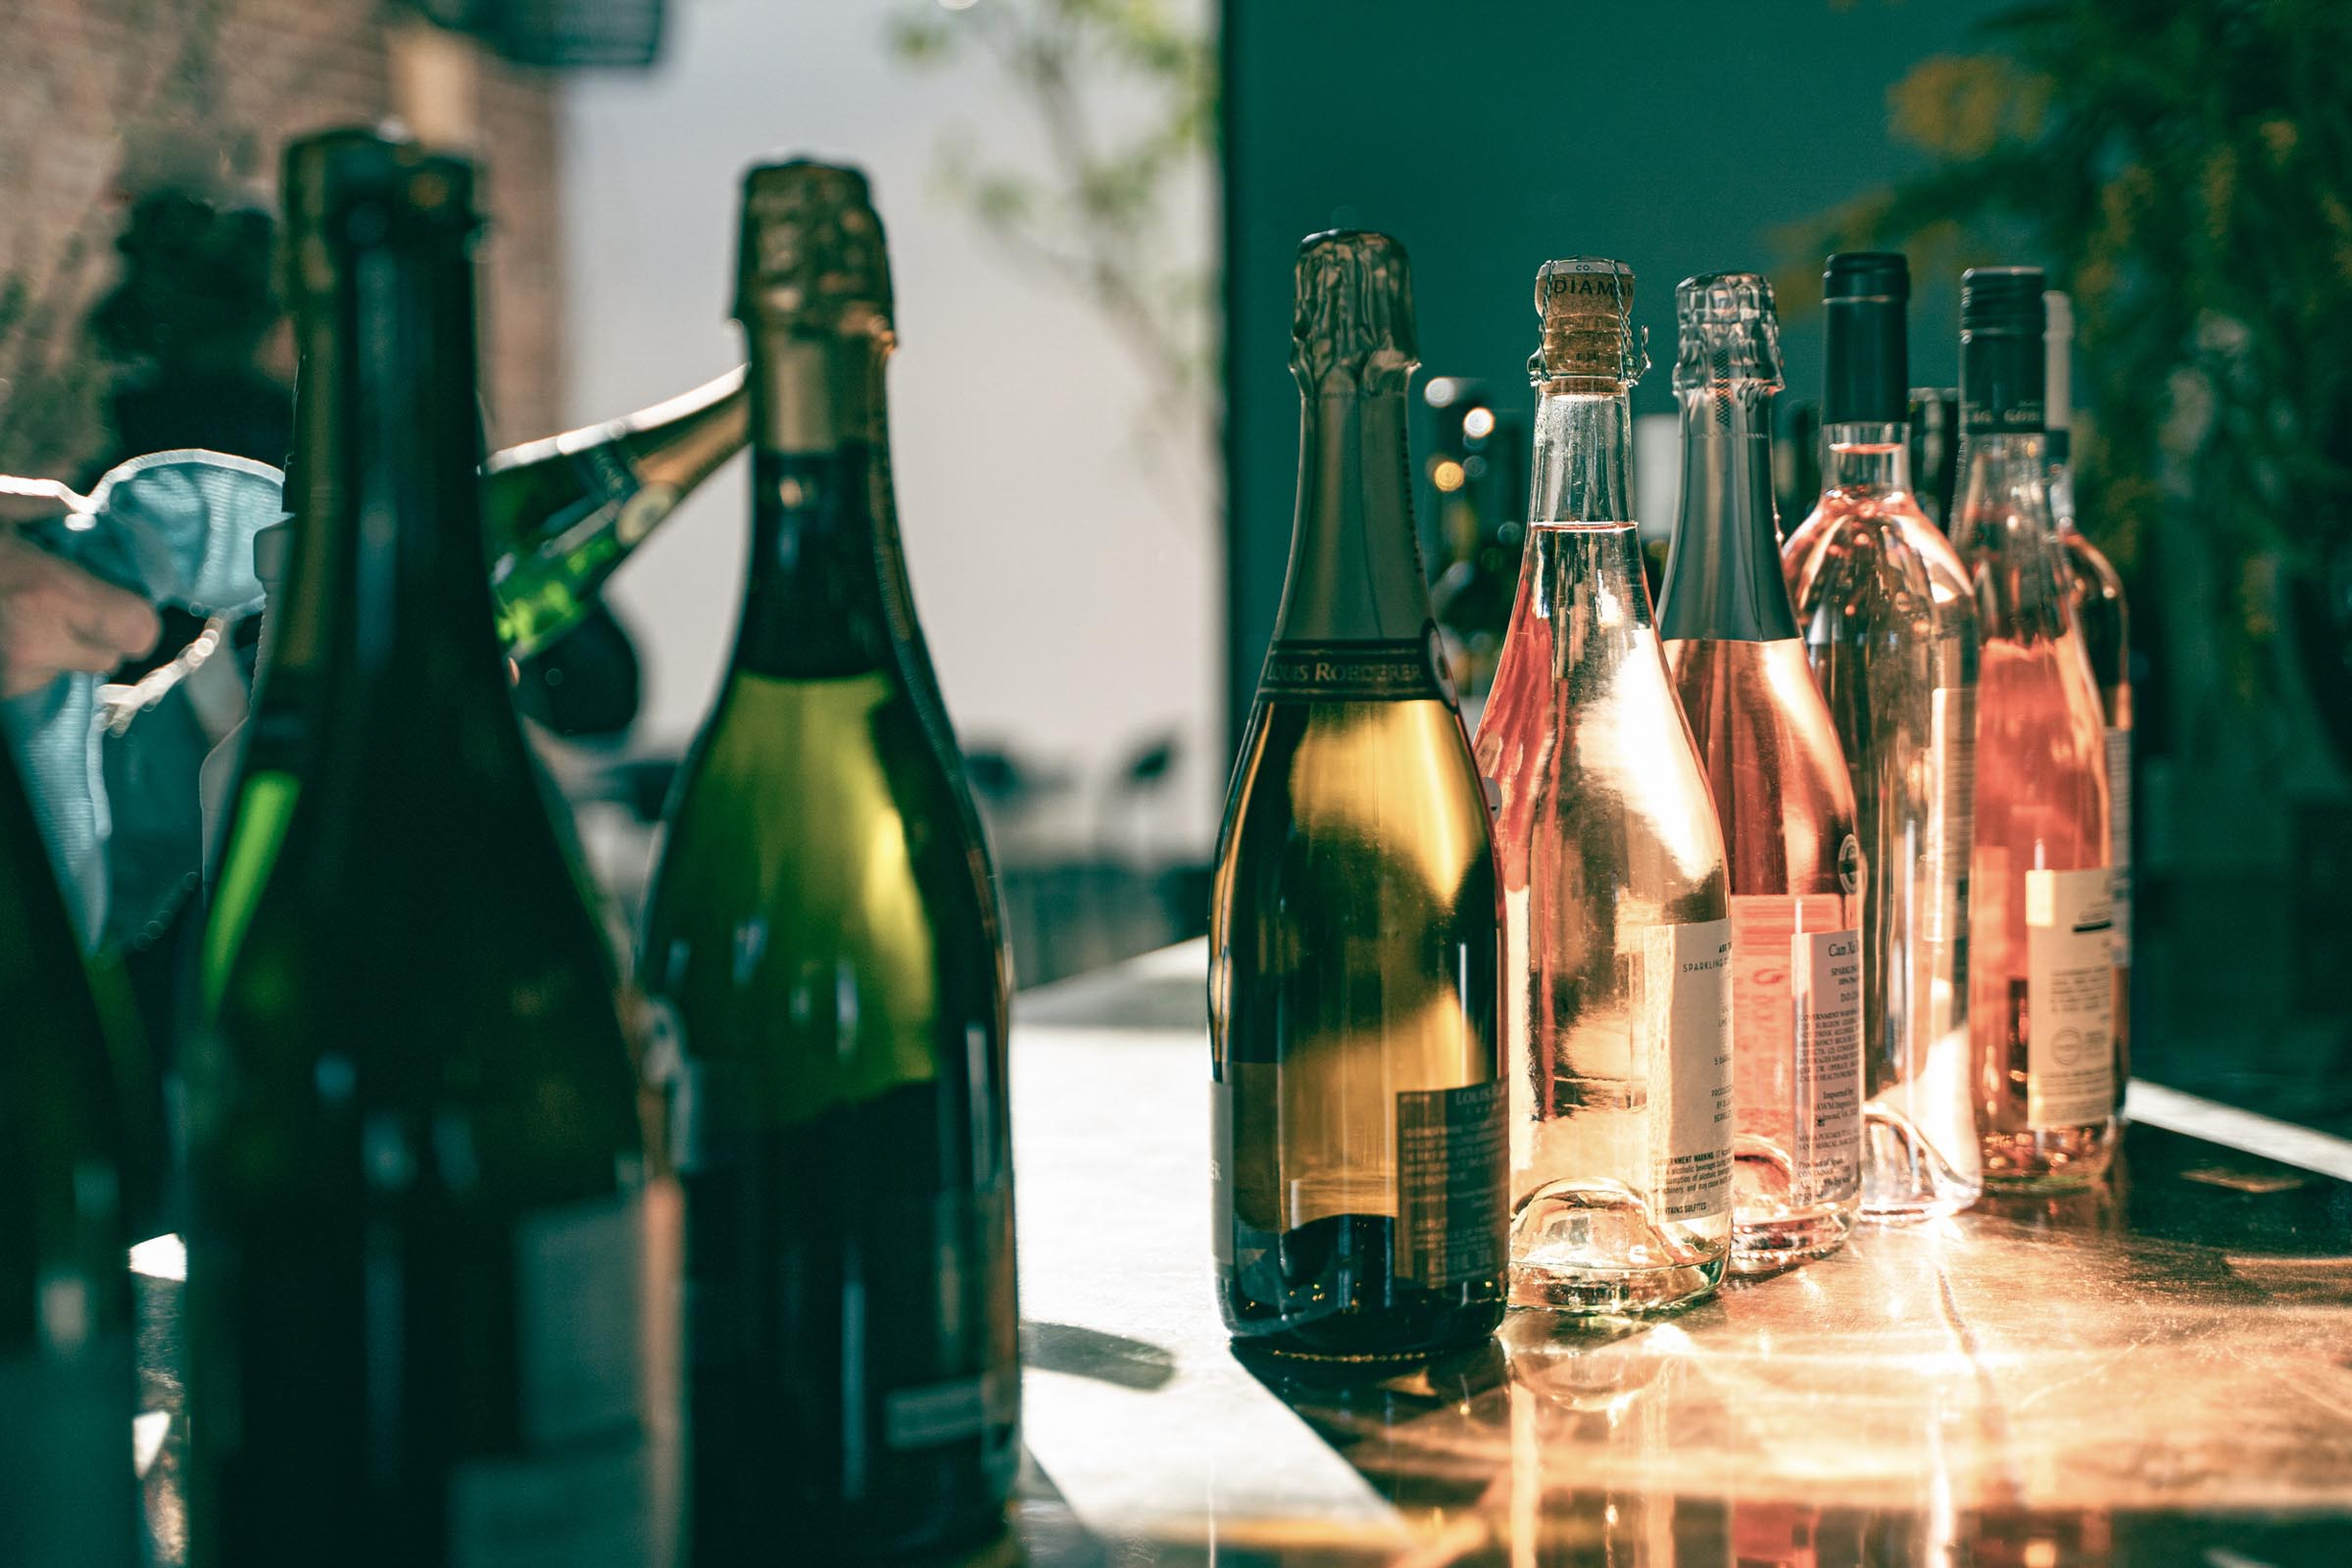 A picture of white wine and rose bottles distributed in a gradient from dark green glass to clear glass.